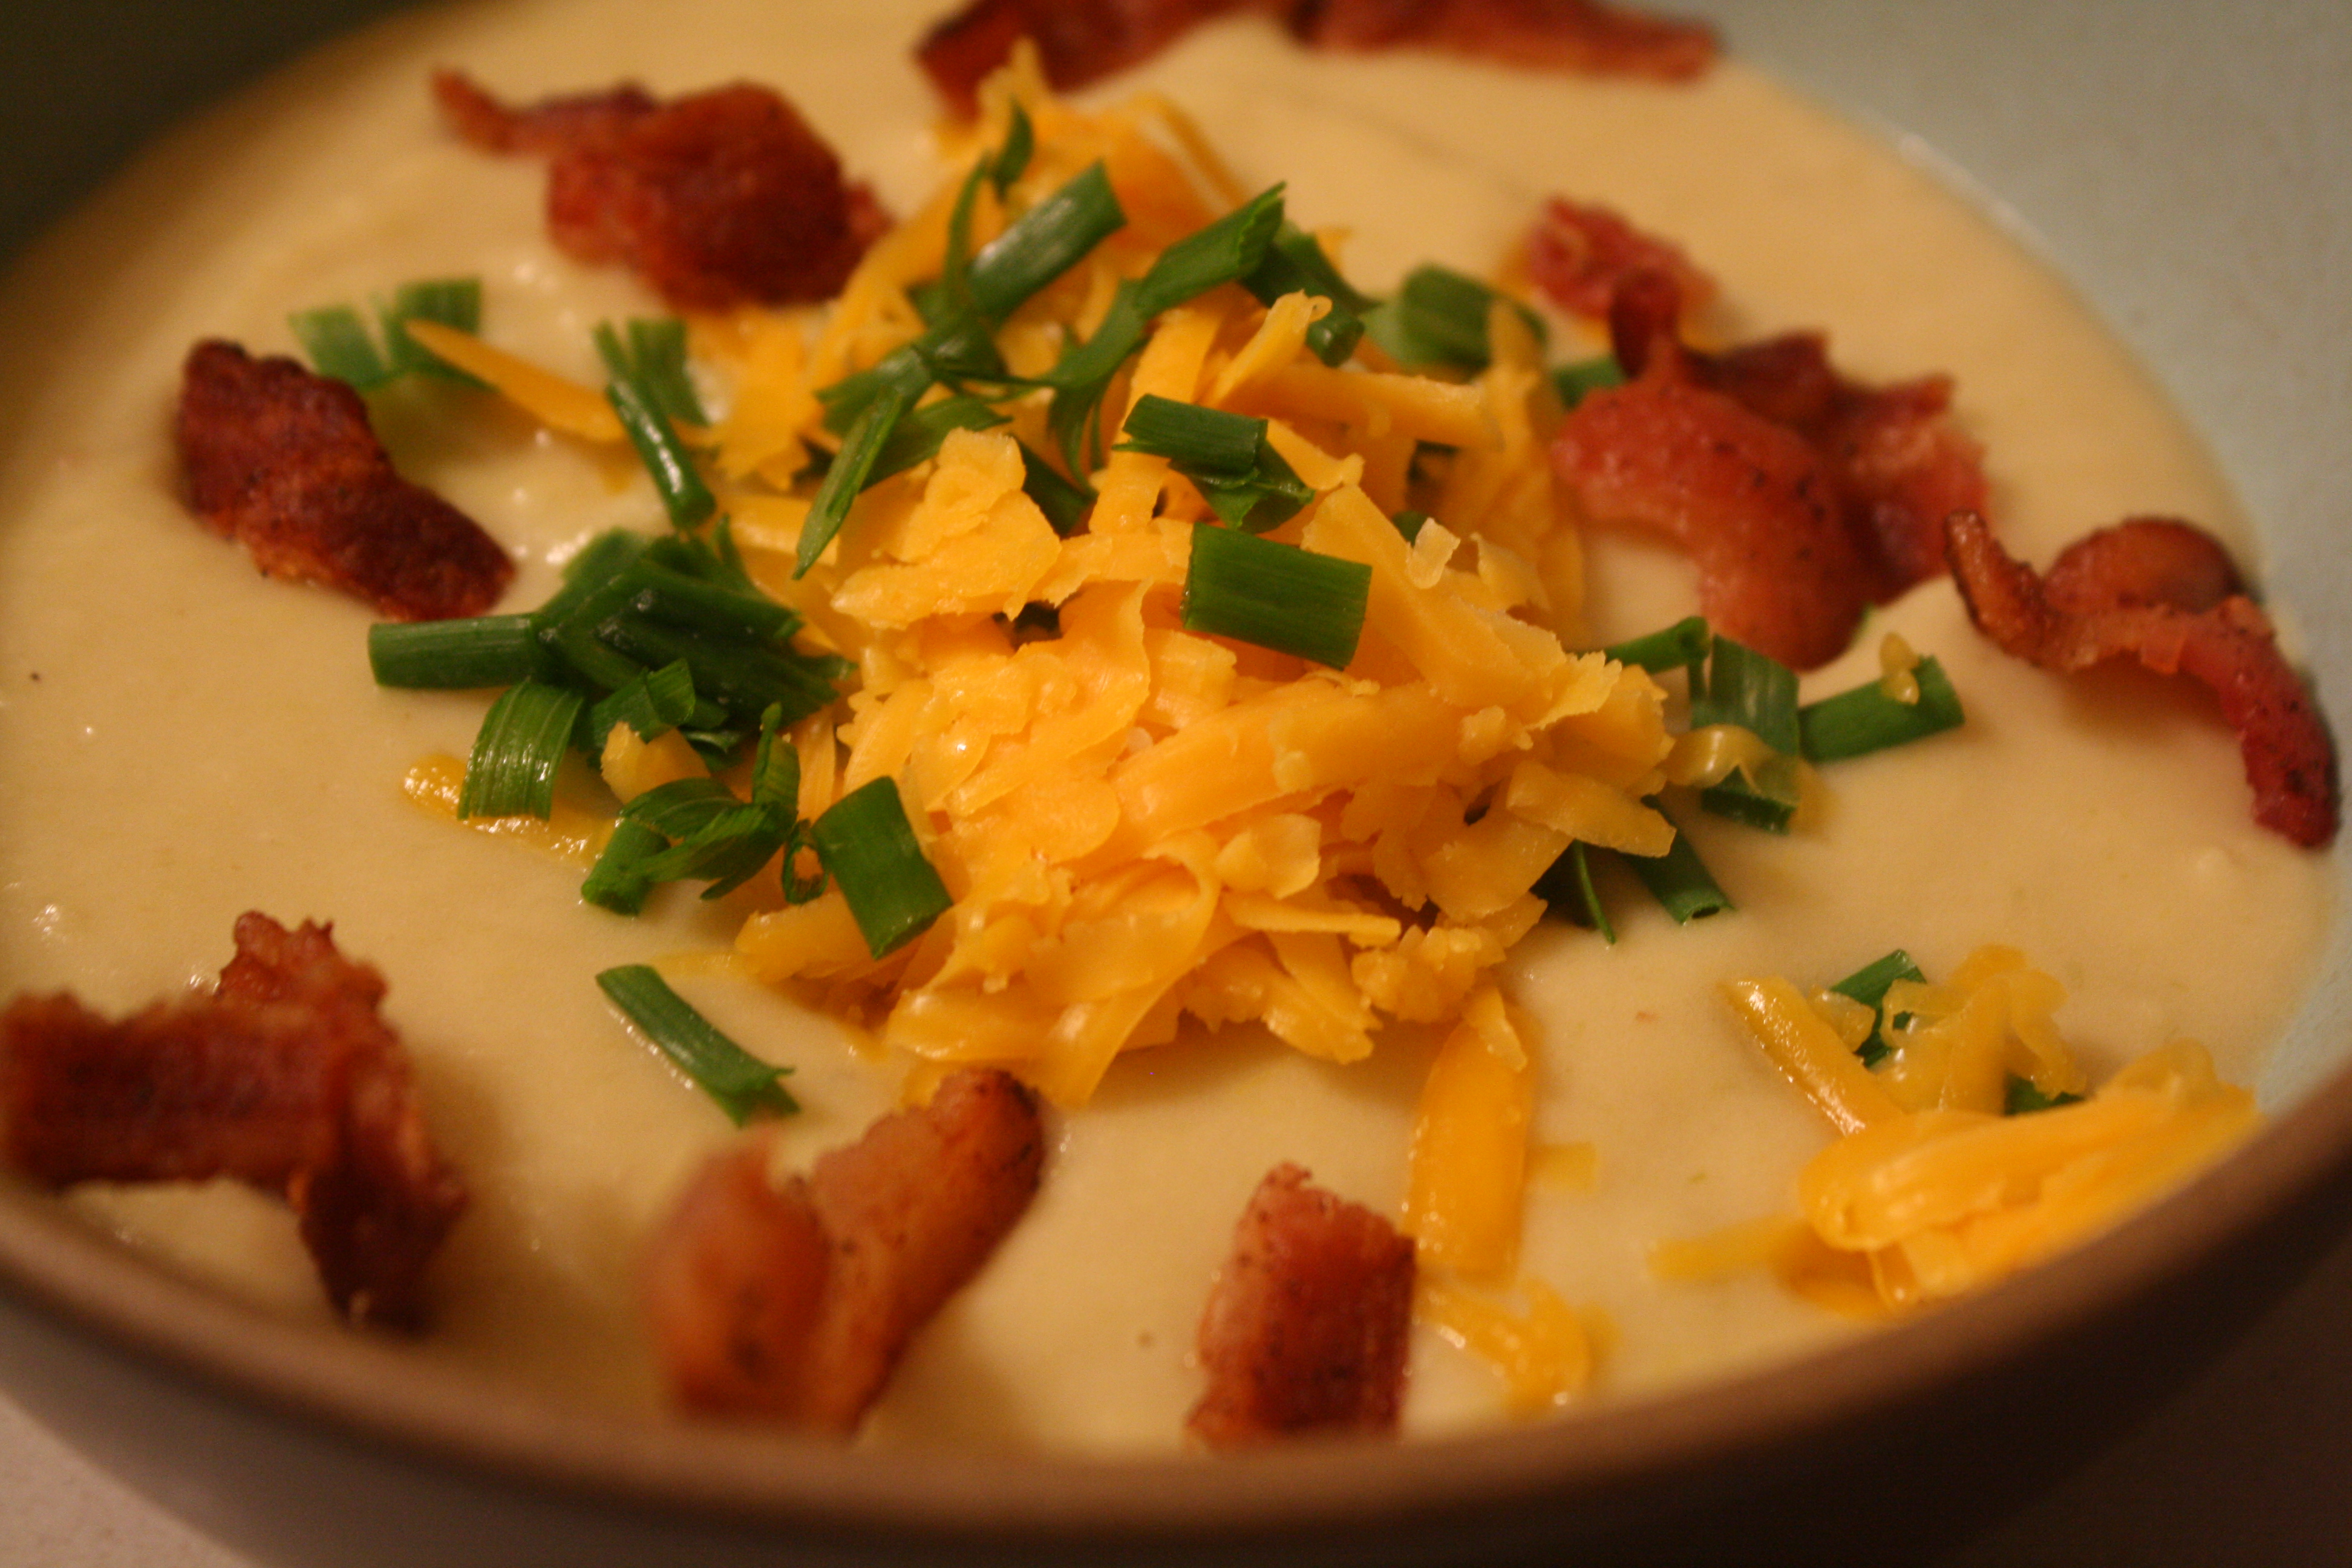 Potato leek soup with bacon and cheese topping